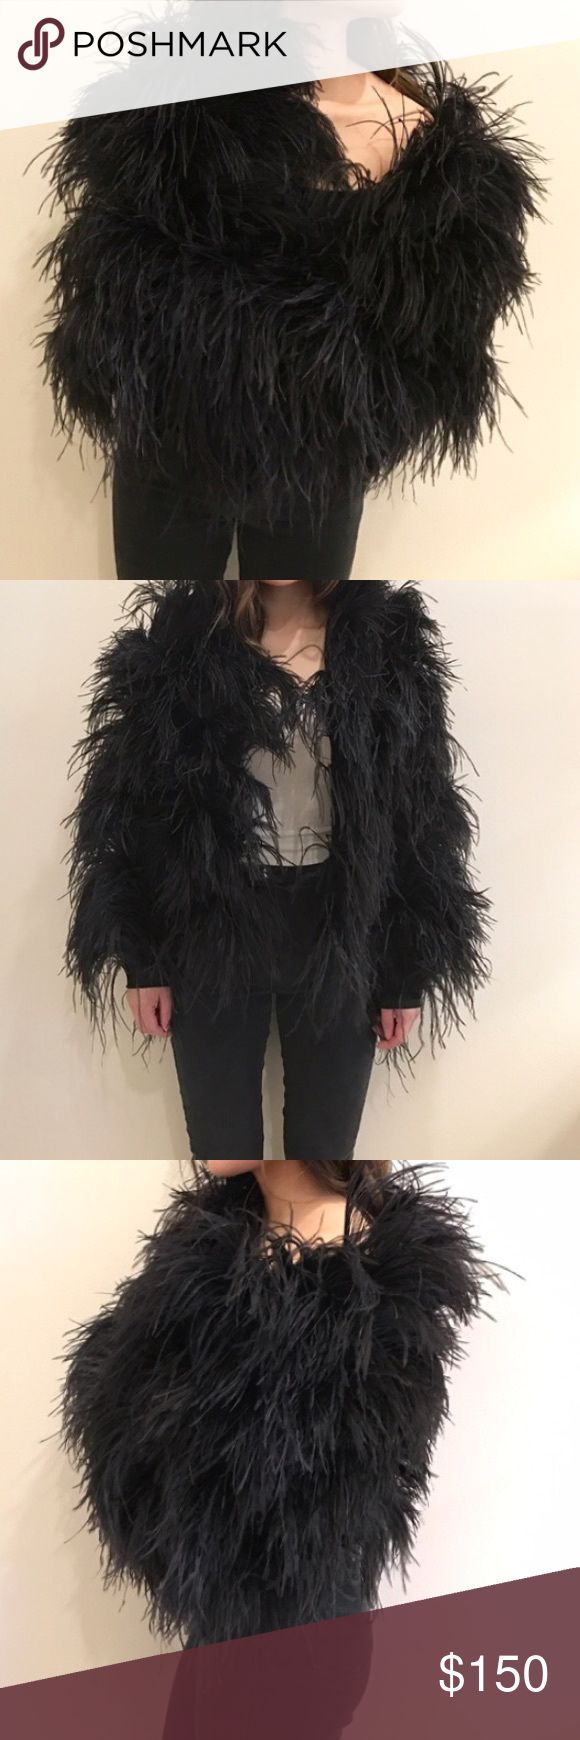 Ostrich feather coat-custom made for a music video Ostrich feather coat custom made for a music video.  Fits a XS or S.  I bought it from another posher but it doesn't fit me since I  am more like a medium :(  beautiful piece, will be great to wear to events.  Previous owner only wore it once for a music video (pictures credit to beautiful Gia) Instant center of attention with this gorgeous piece of art, very well made.    Color is black.  I will try to post more pictures later.  All offers…